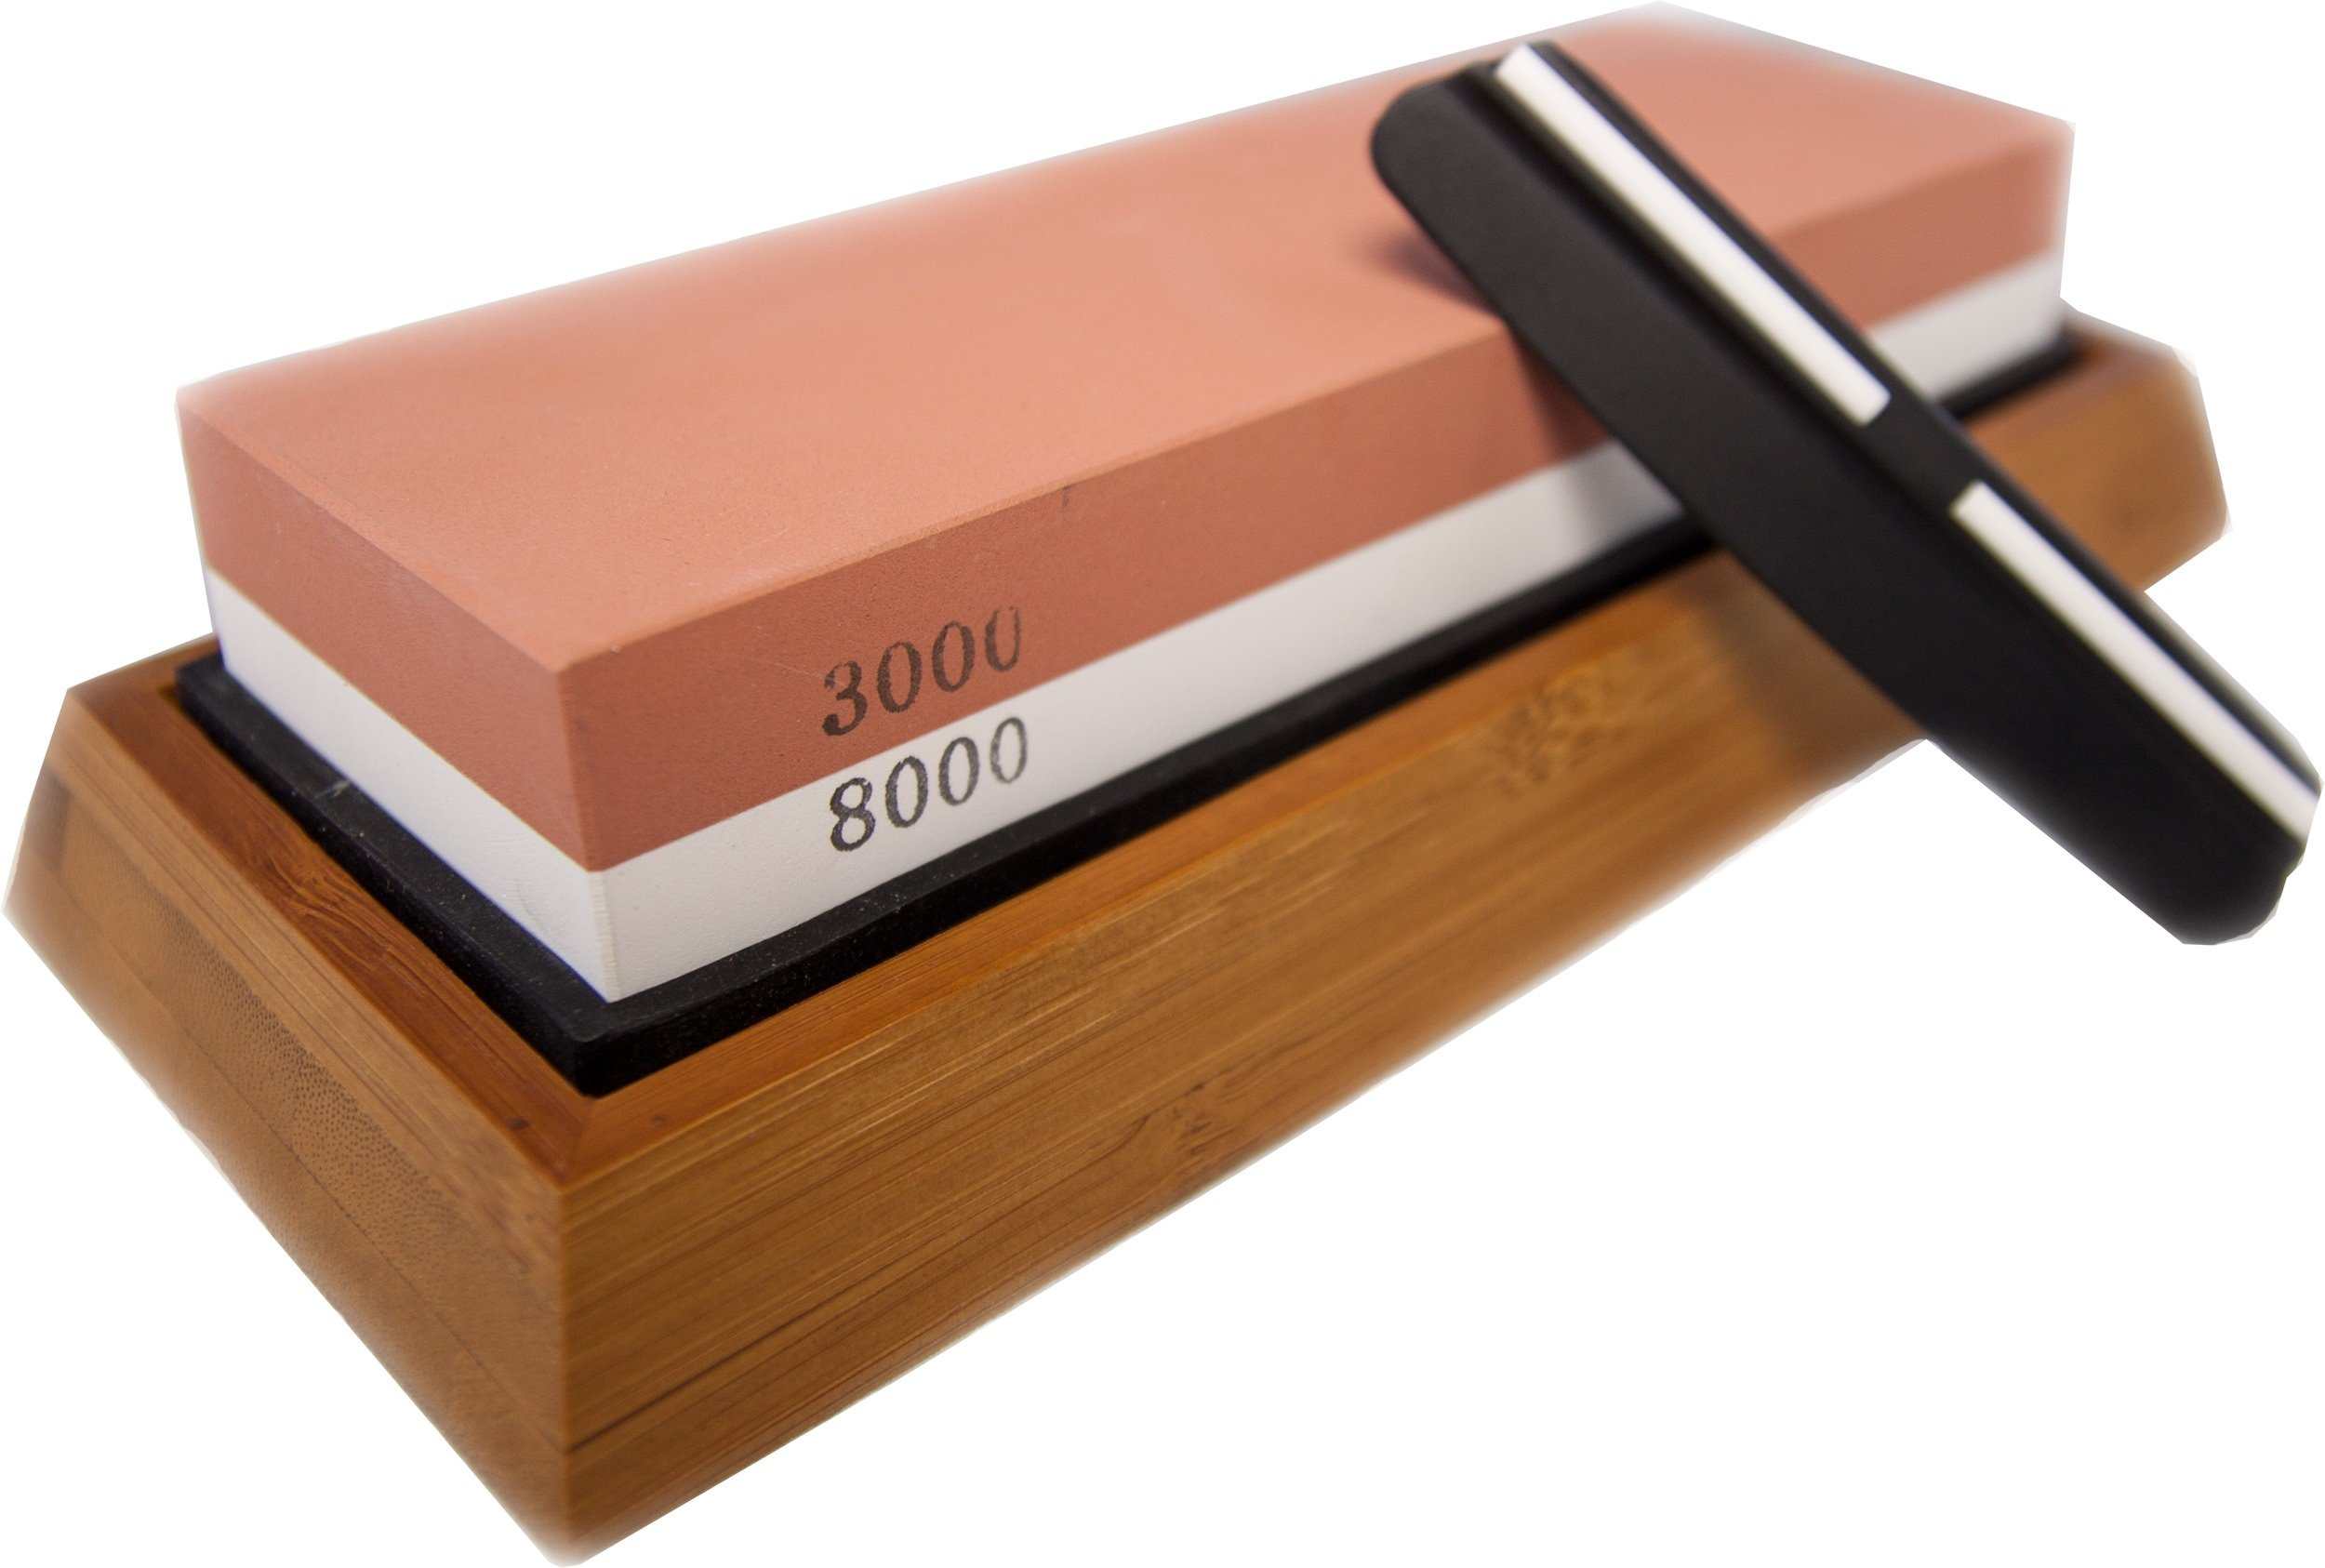 Whetstone Knife Sharpening Stone | Professional Grade | 3000 Grit for General Sharpening of Knives | 8000 Grit for Heavy Duty Knives | Non Slip Bamboo Base | Durable Guide for Precise Sharpening